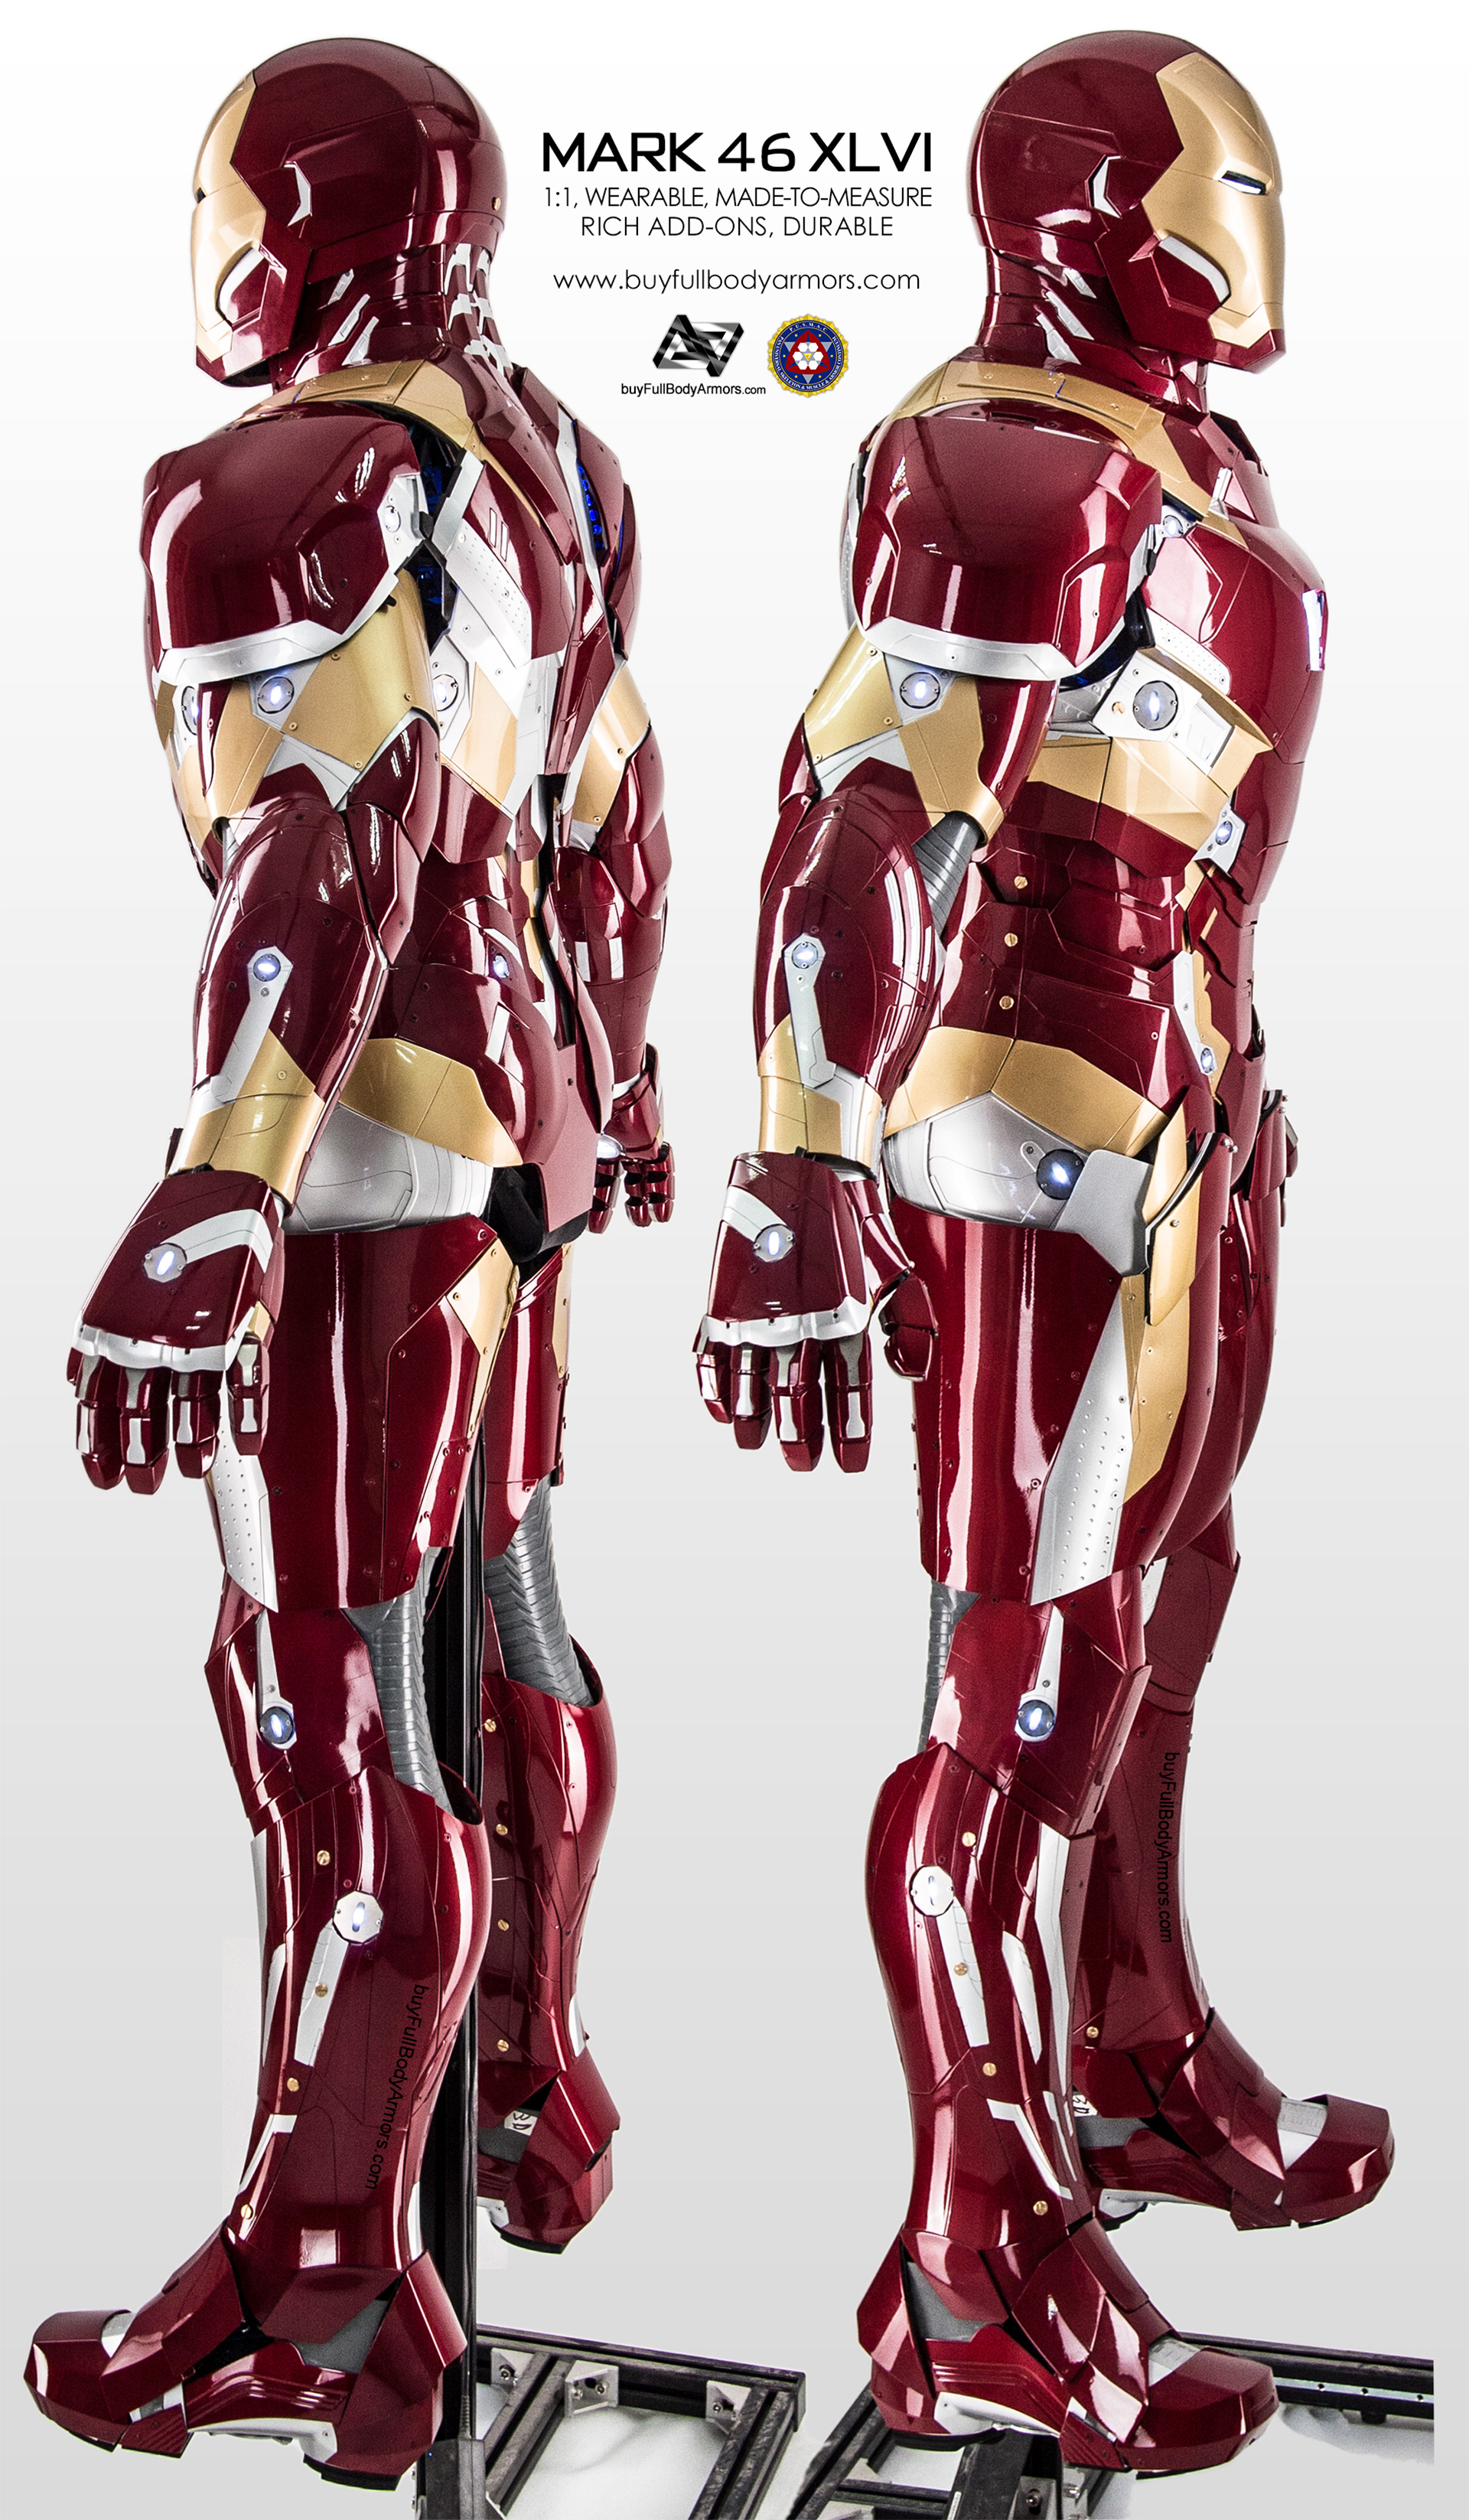 wearable_iron_man_mark_46_sidebyside_armor_costume_suit